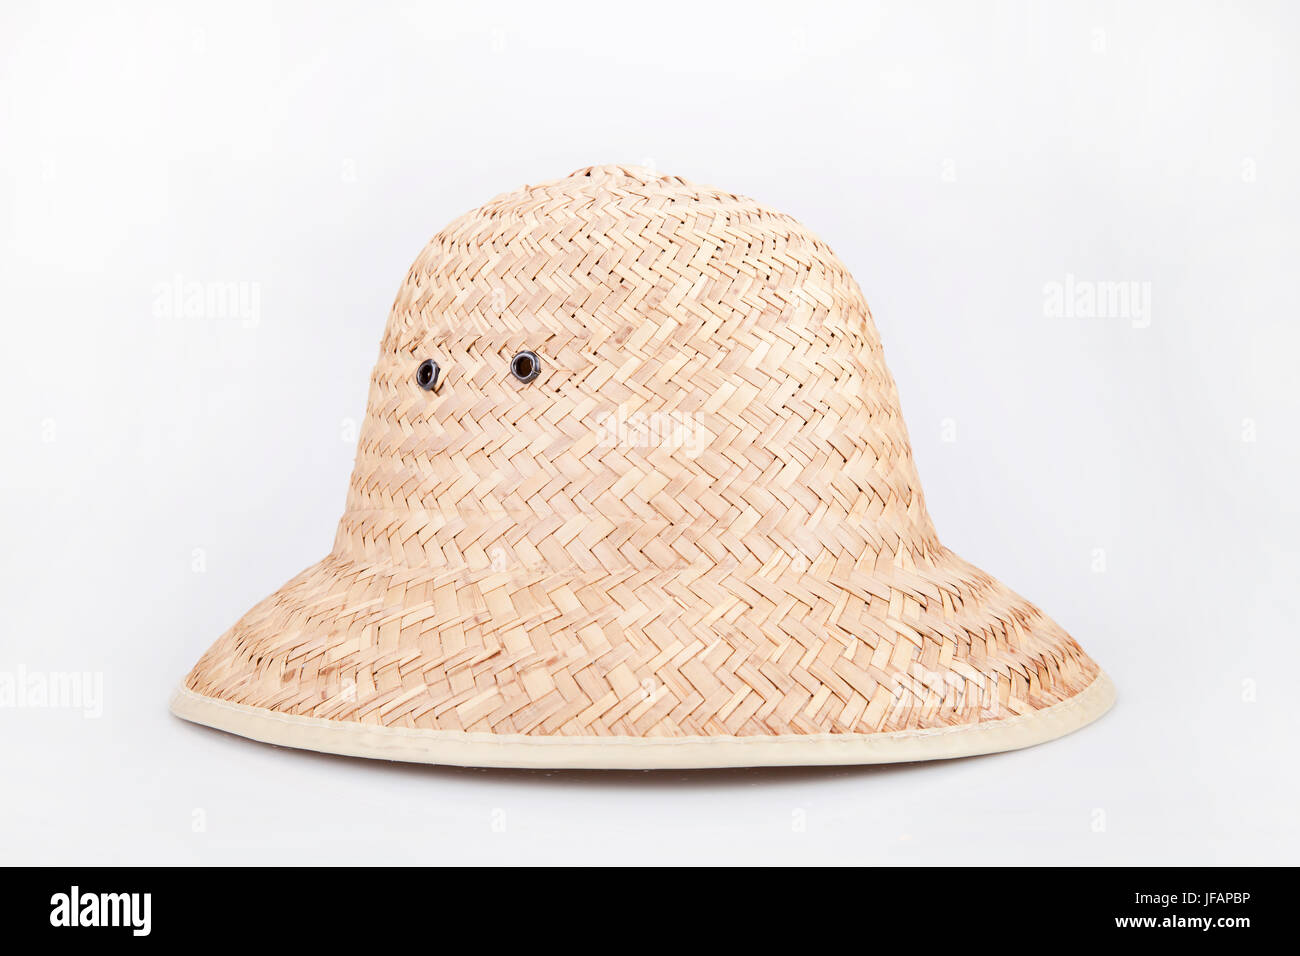 469942d9b6c Straw hat on a white surface. Wicker hat isolated on white background. -  Stock